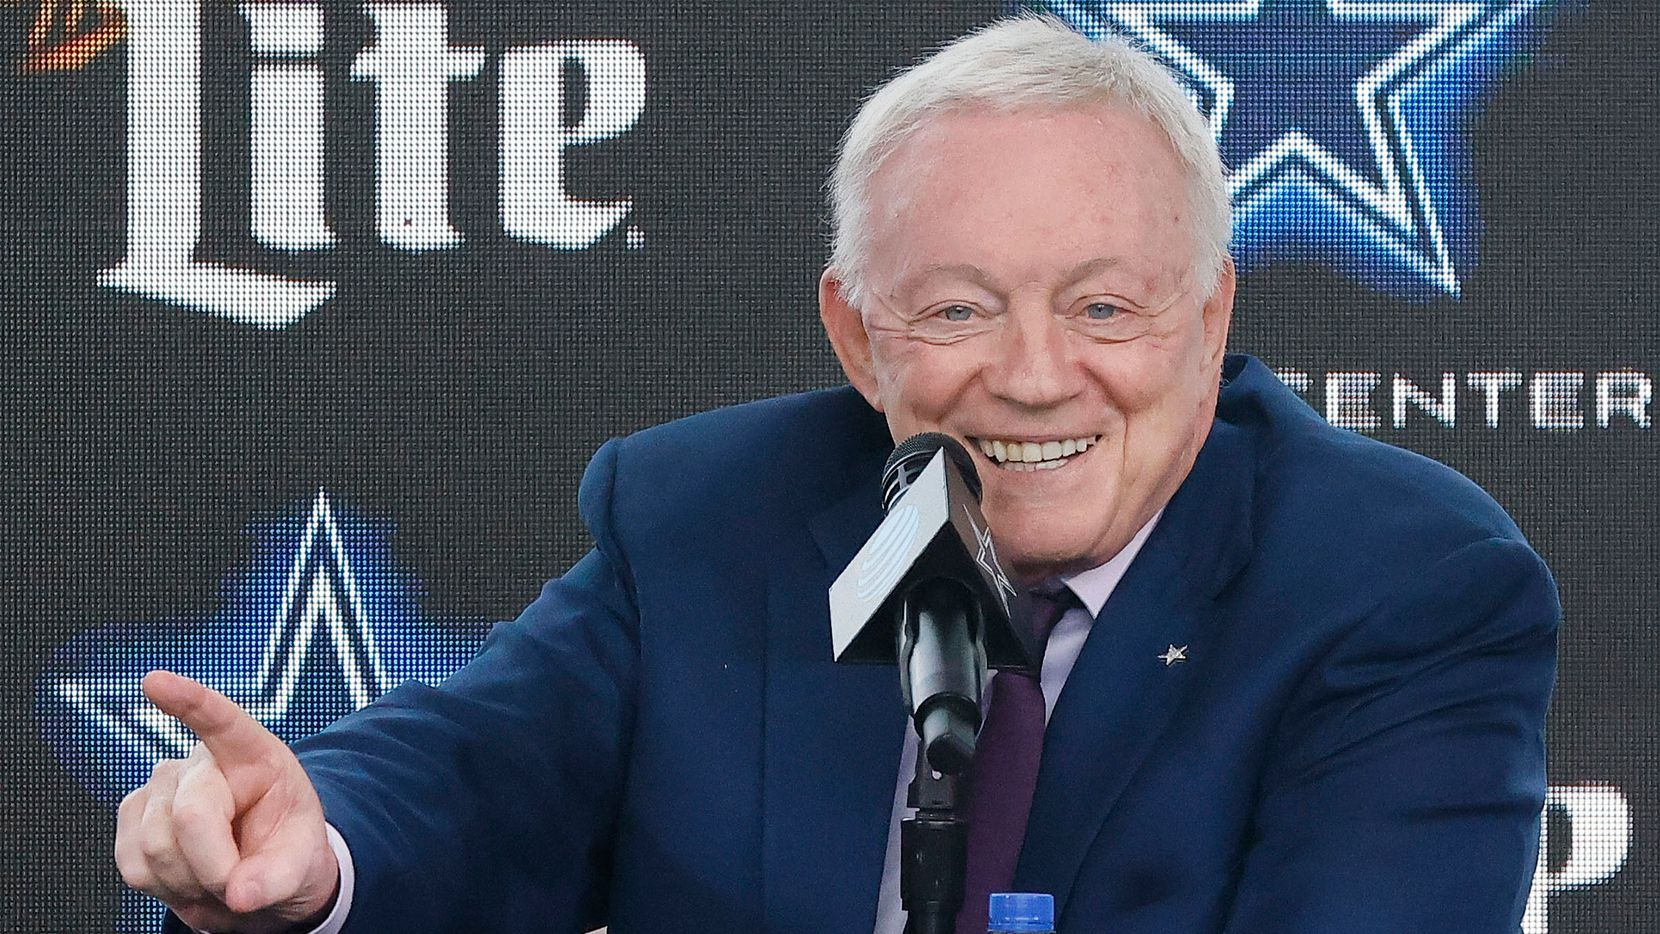 Dallas Cowboys owner Jerry Jones addresses the media at The Star in Frisco, Texas after signing Dak Prescott to a 4-year, $160 million contract with the team, Wednesday, March 10, 2021. (Tom Fox/The Dallas Morning News)